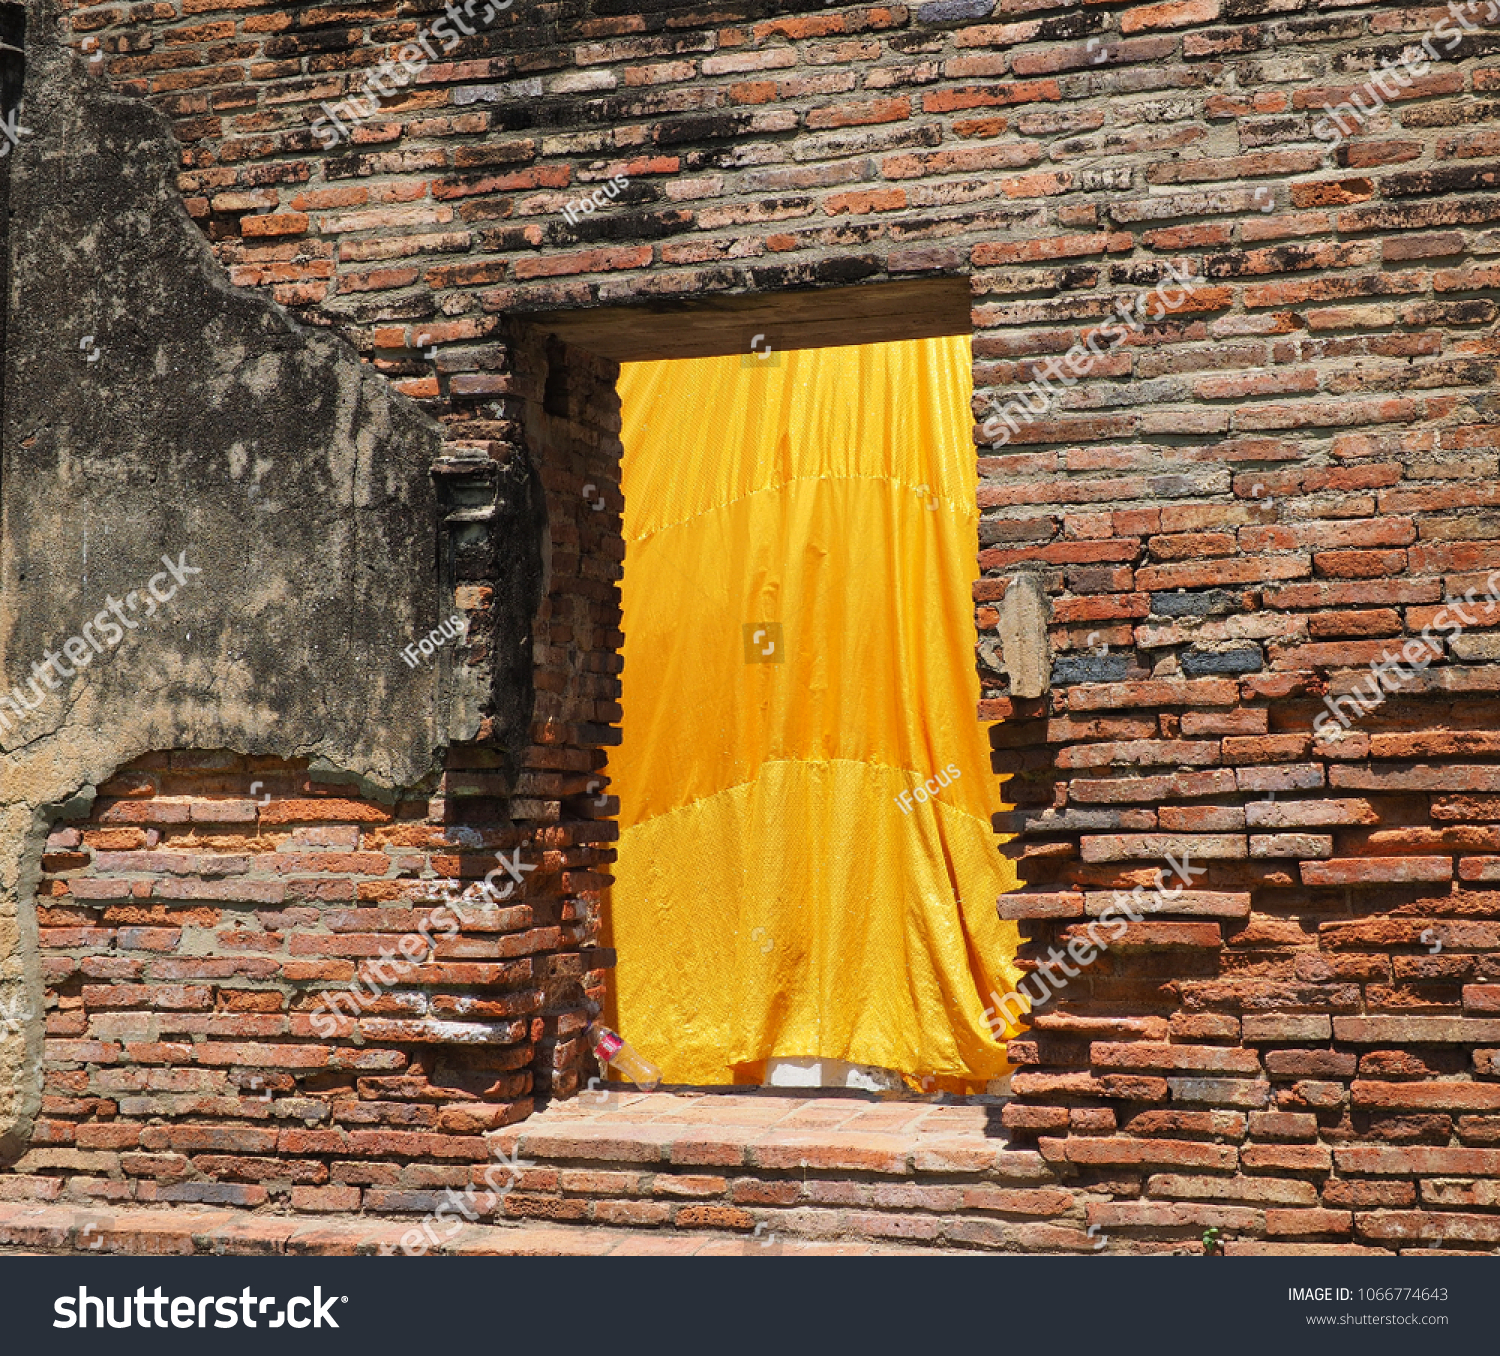 A yellow textile fabric hangs in a weathered brick wall frame